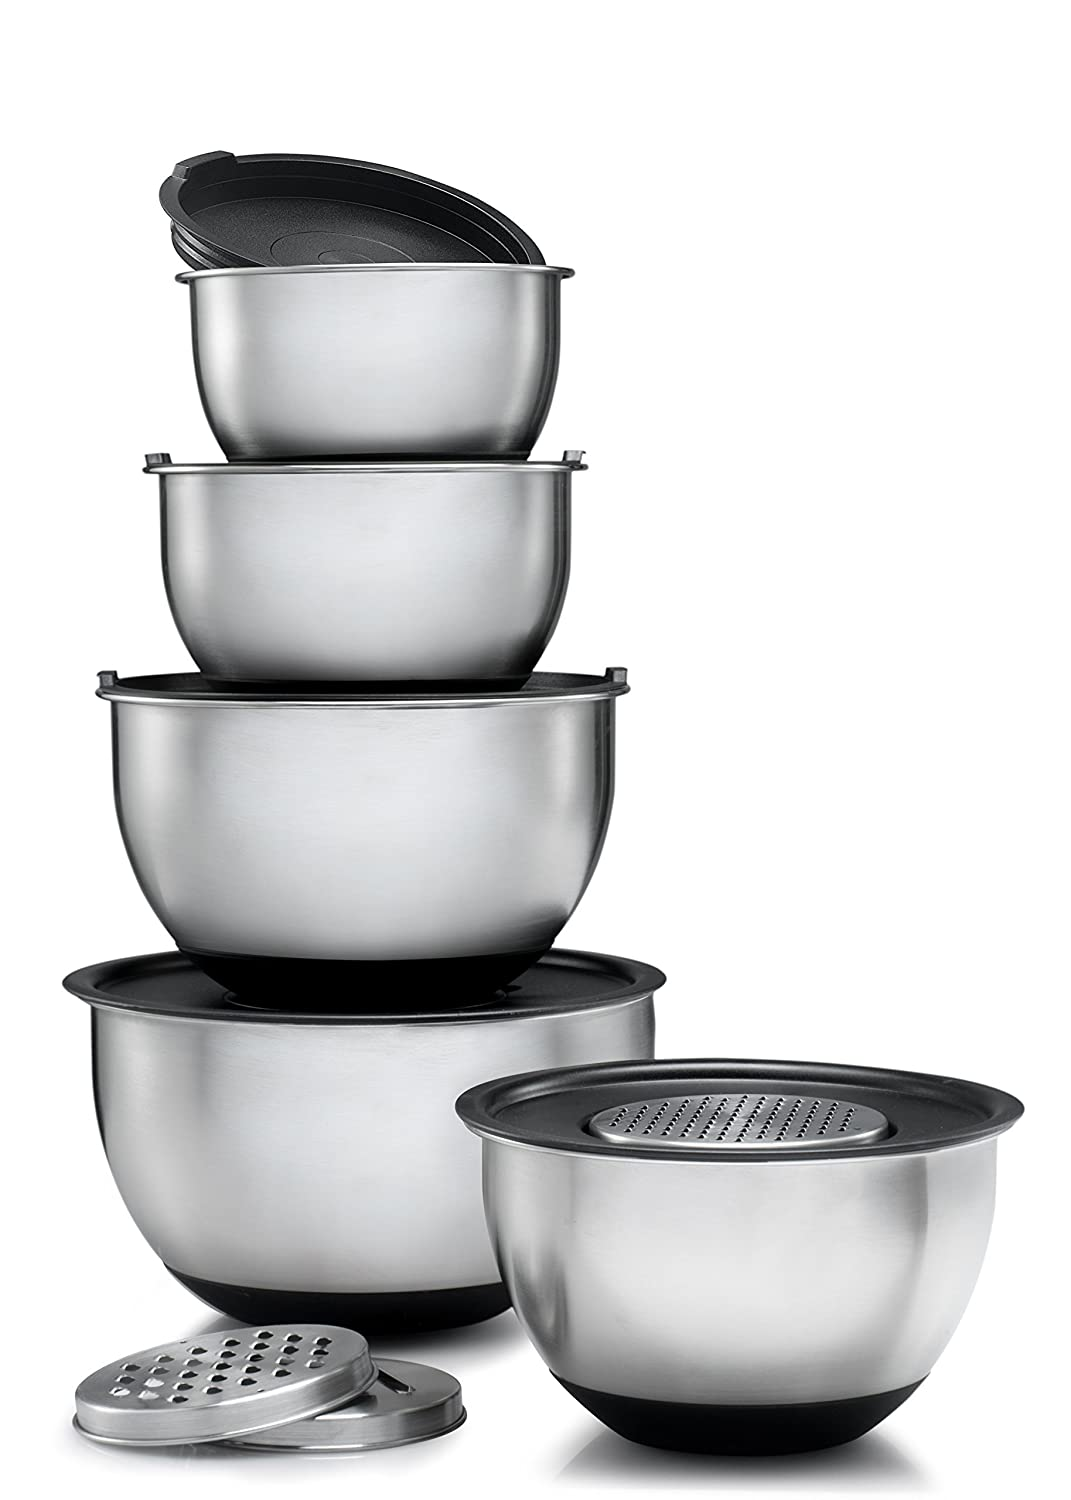 Sagler Stainless Steel Mixing Bowls Set of 5, with Lids and 3 kind of graters 4212